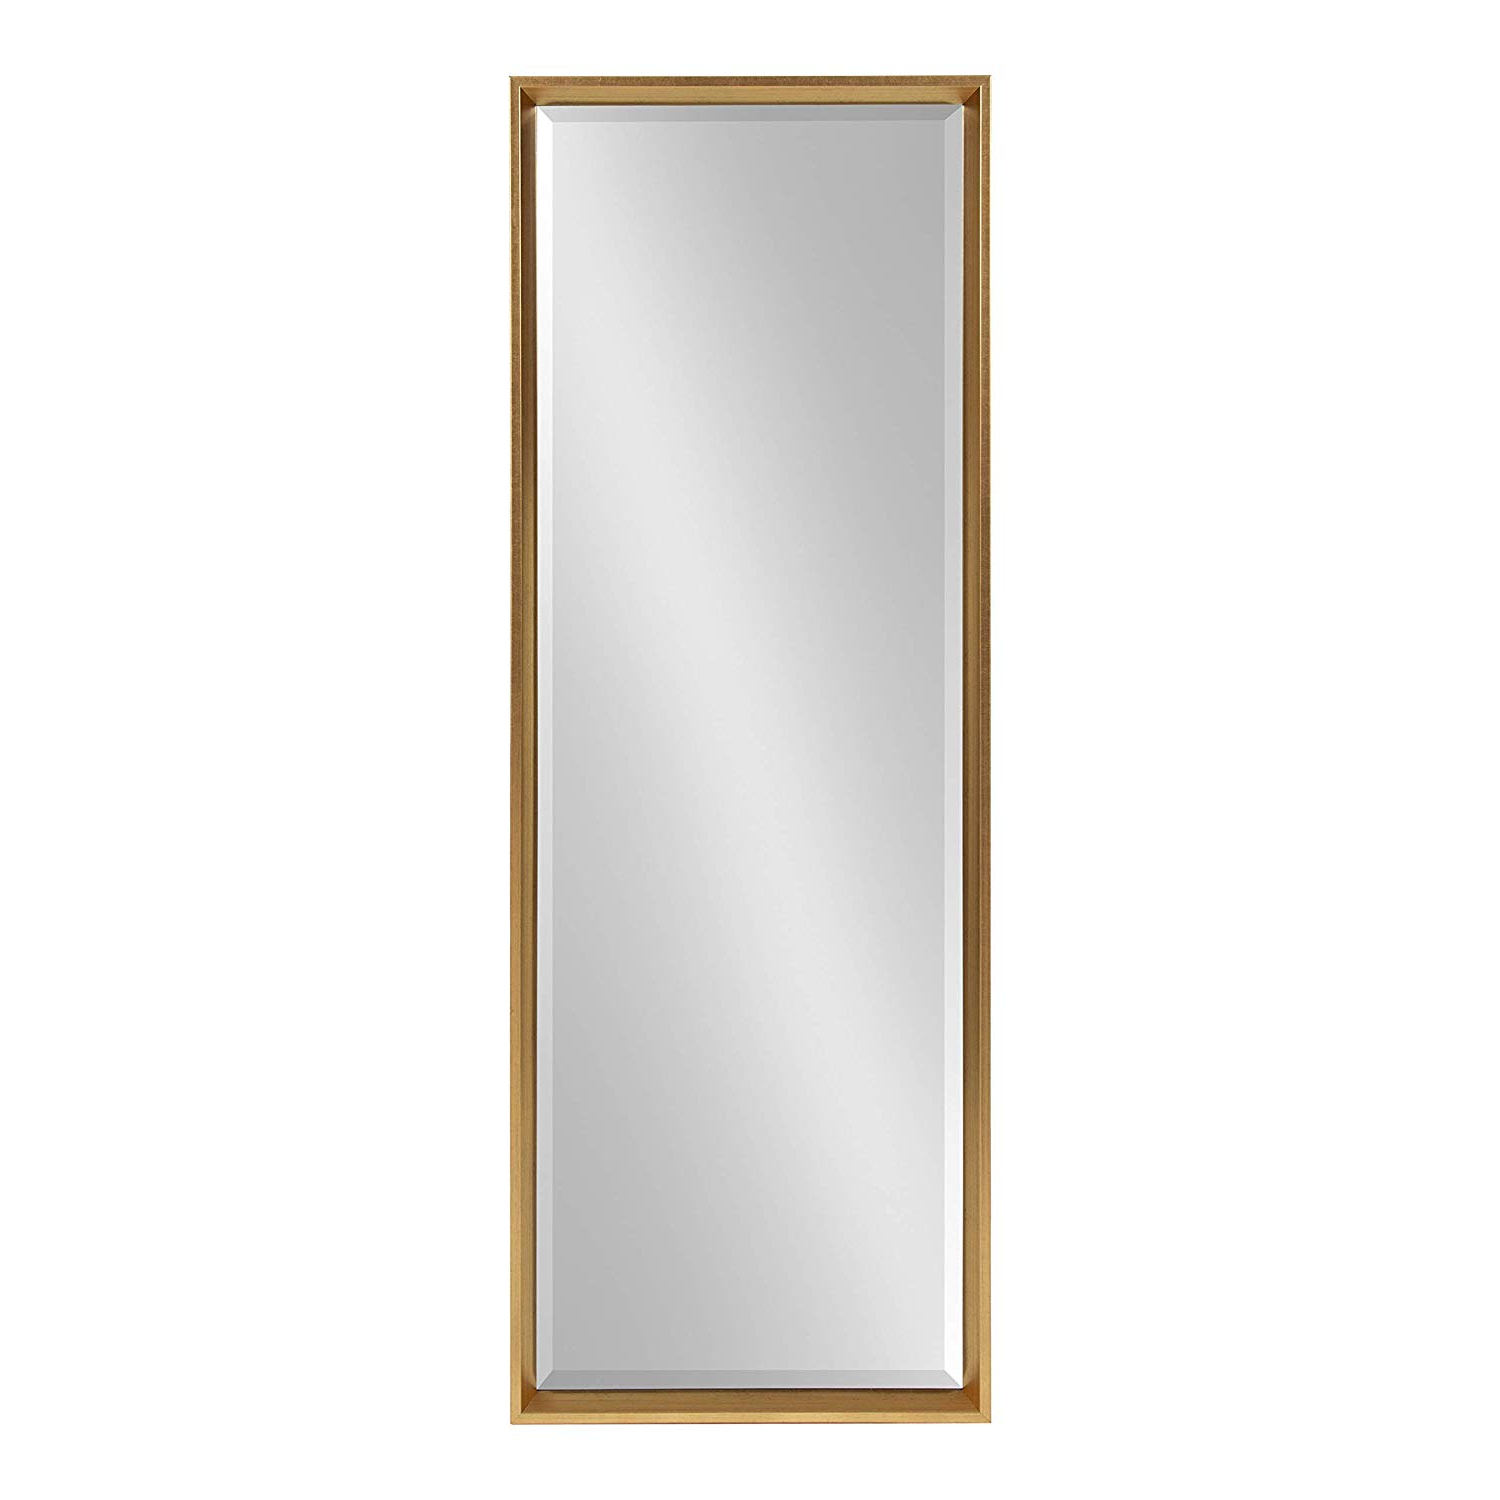 Most Recent Kate And Laurel Calter Modern Framed Full Length Beveled Wall Mirror, 17.5x (View 2 of 20)